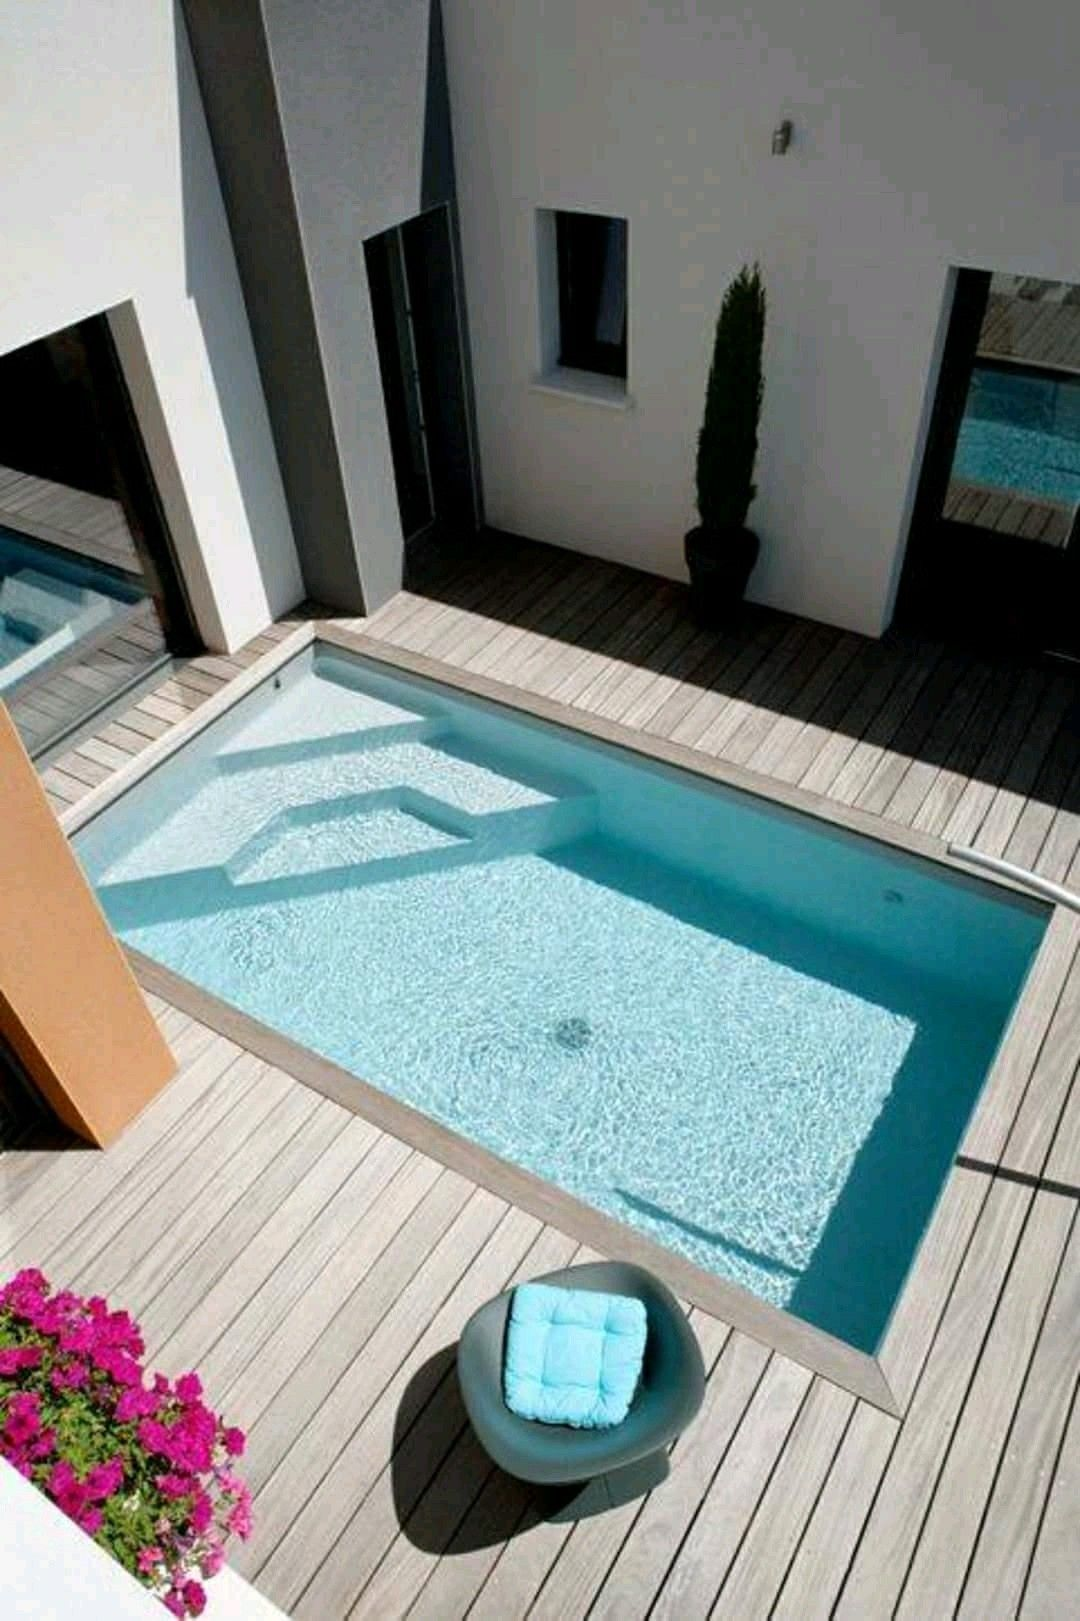 Swimming pool designs featuring new swimming pool